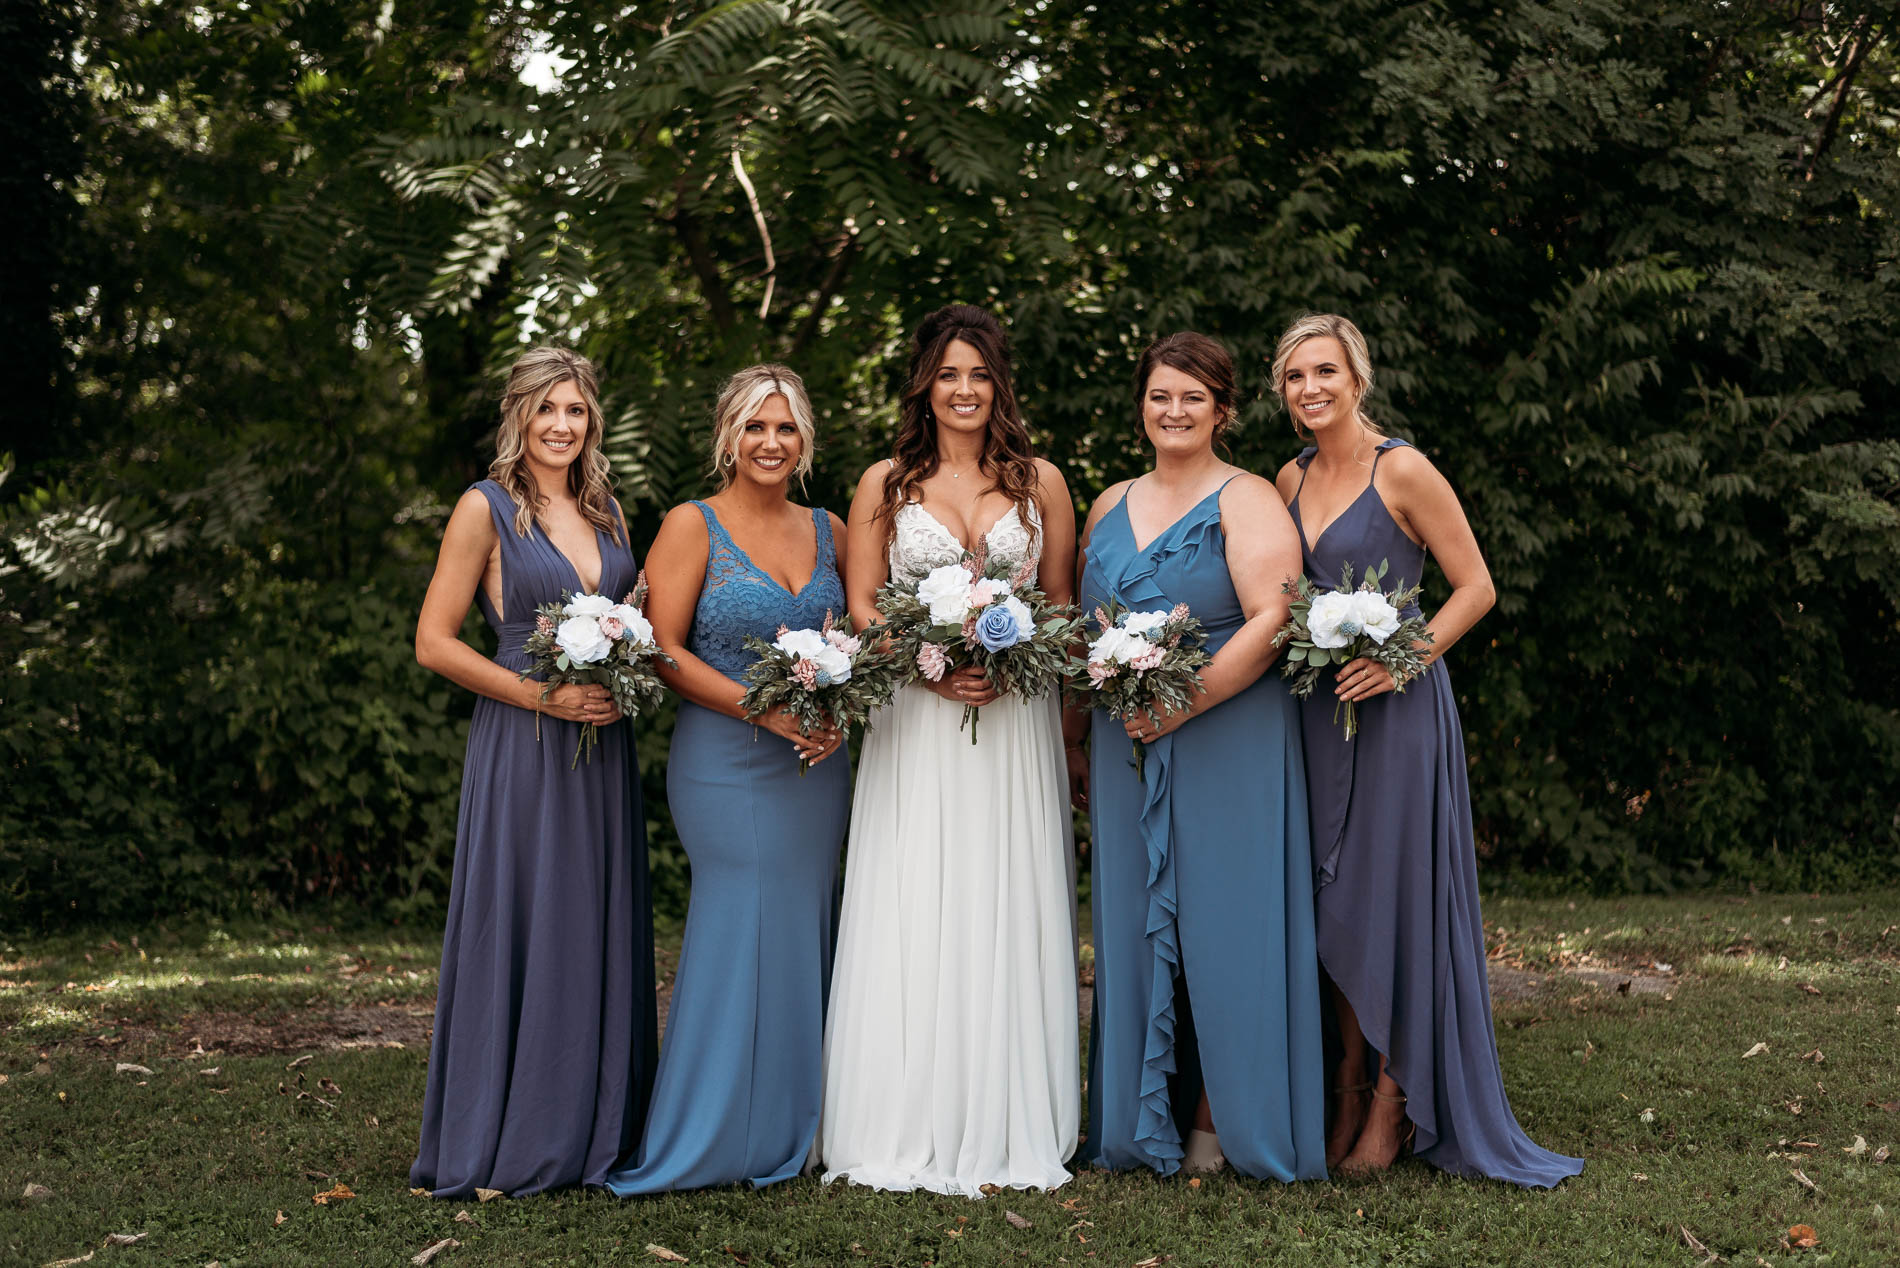 Terre-Haute-Wedding-Photographer-8